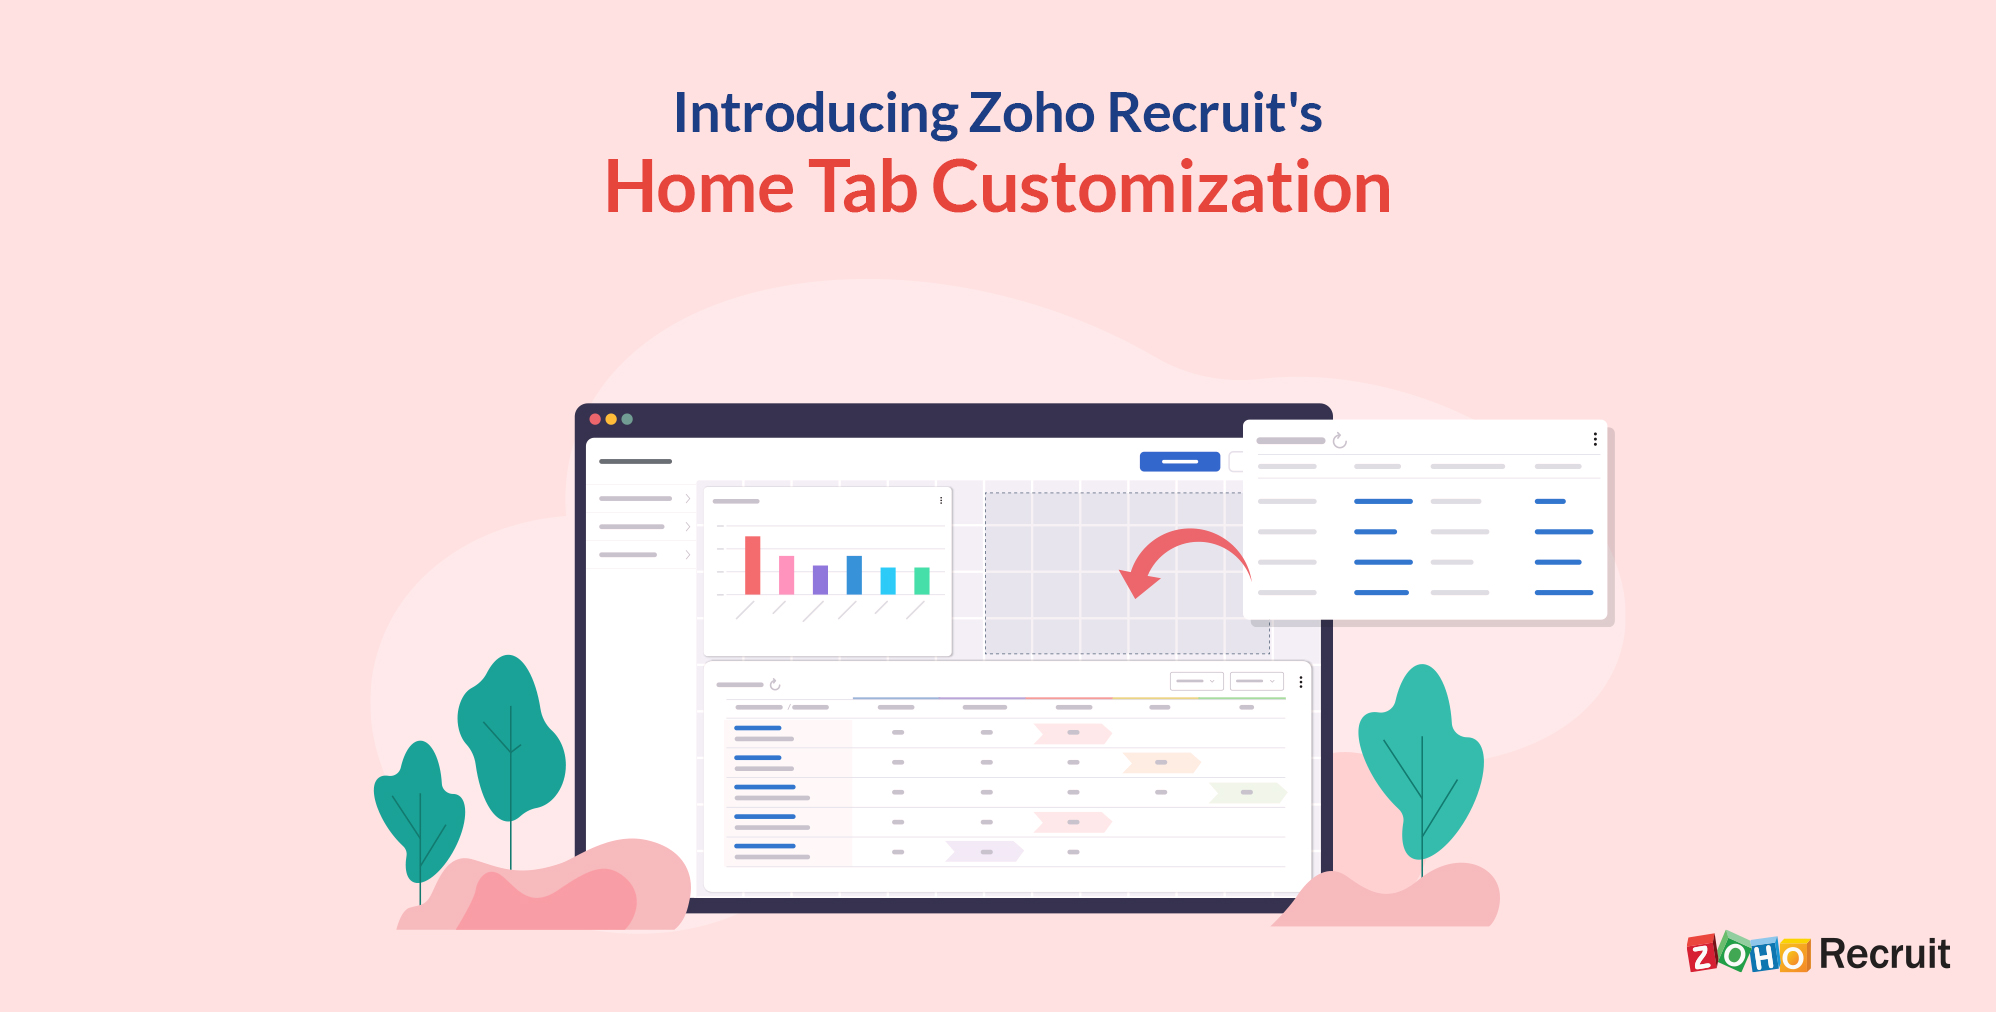 Monitor and analyze data better with Custom Home Tabs